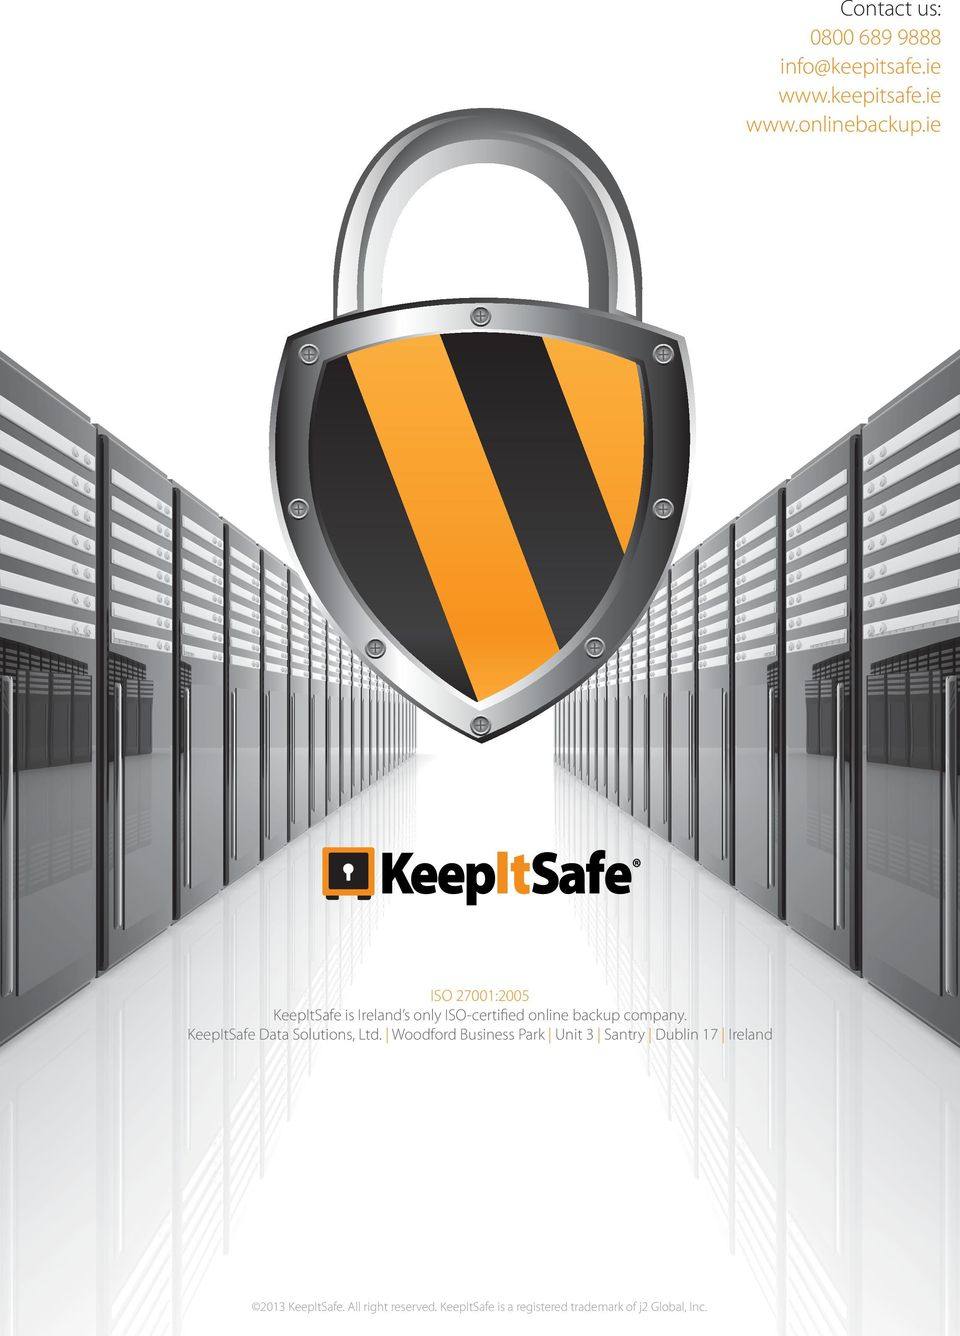 KeepItSafe Data Solutions, Ltd.